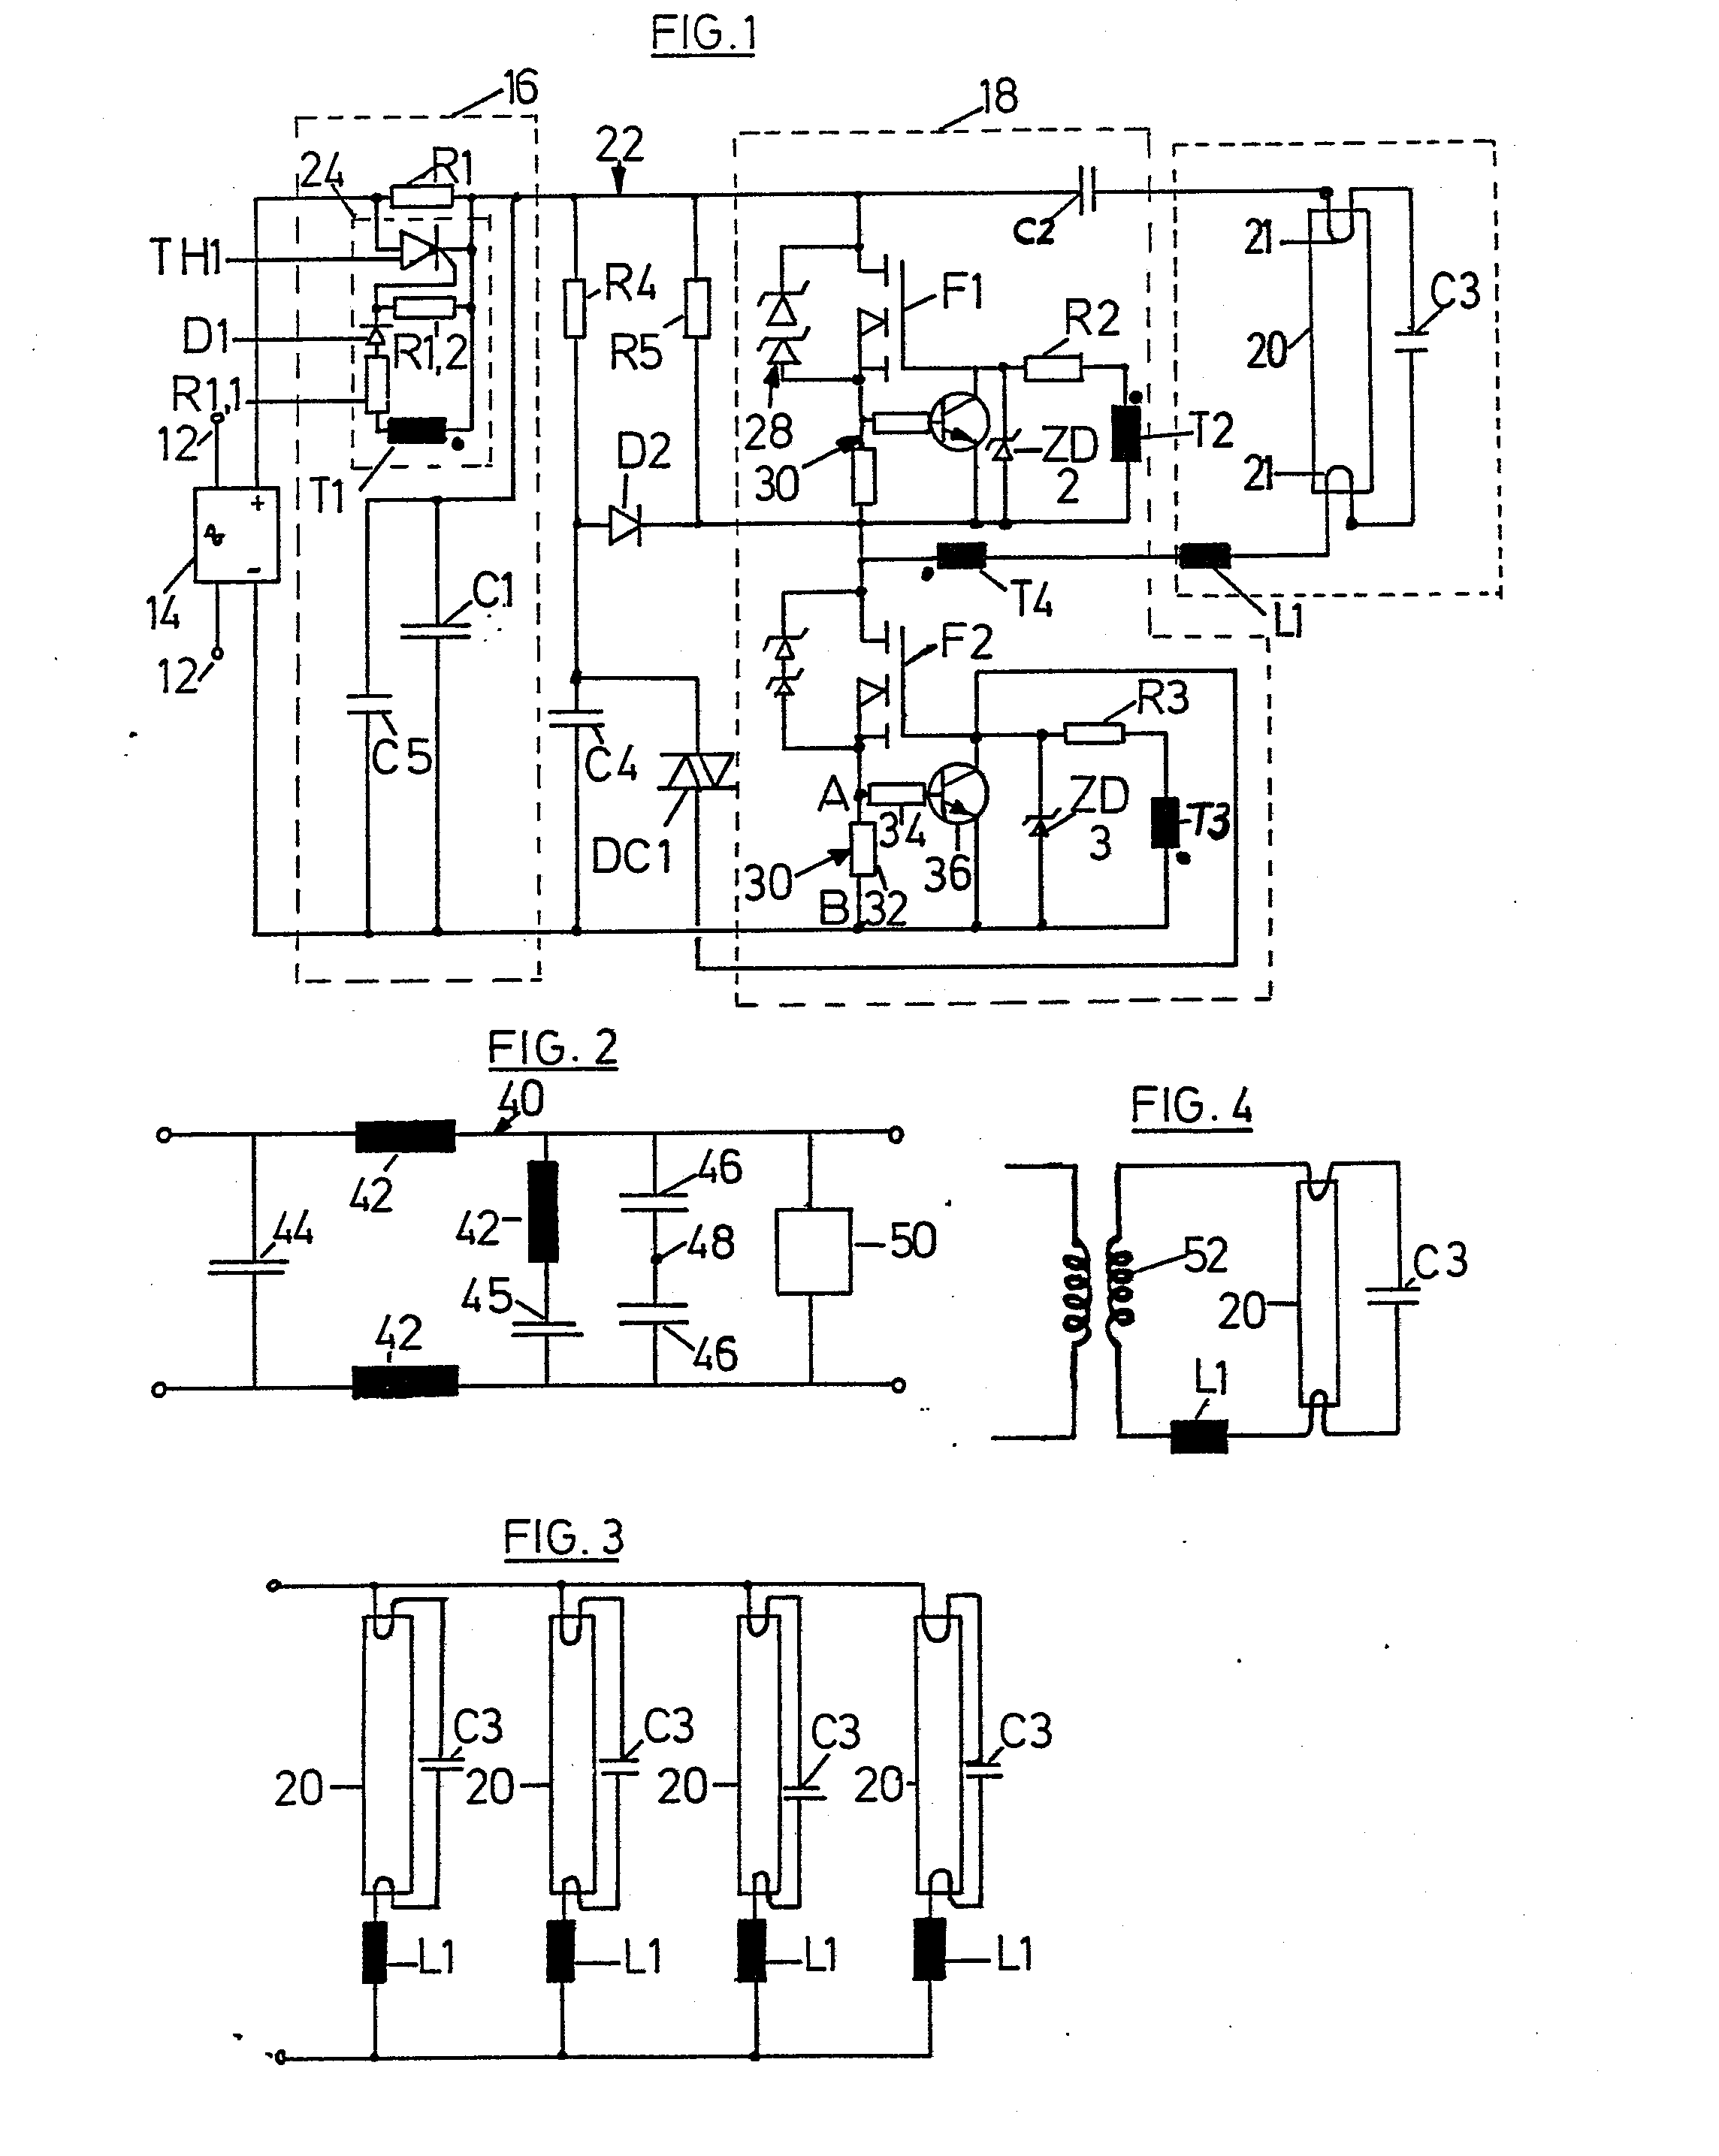 alternating current sensing circuit of claim 1 characterized in